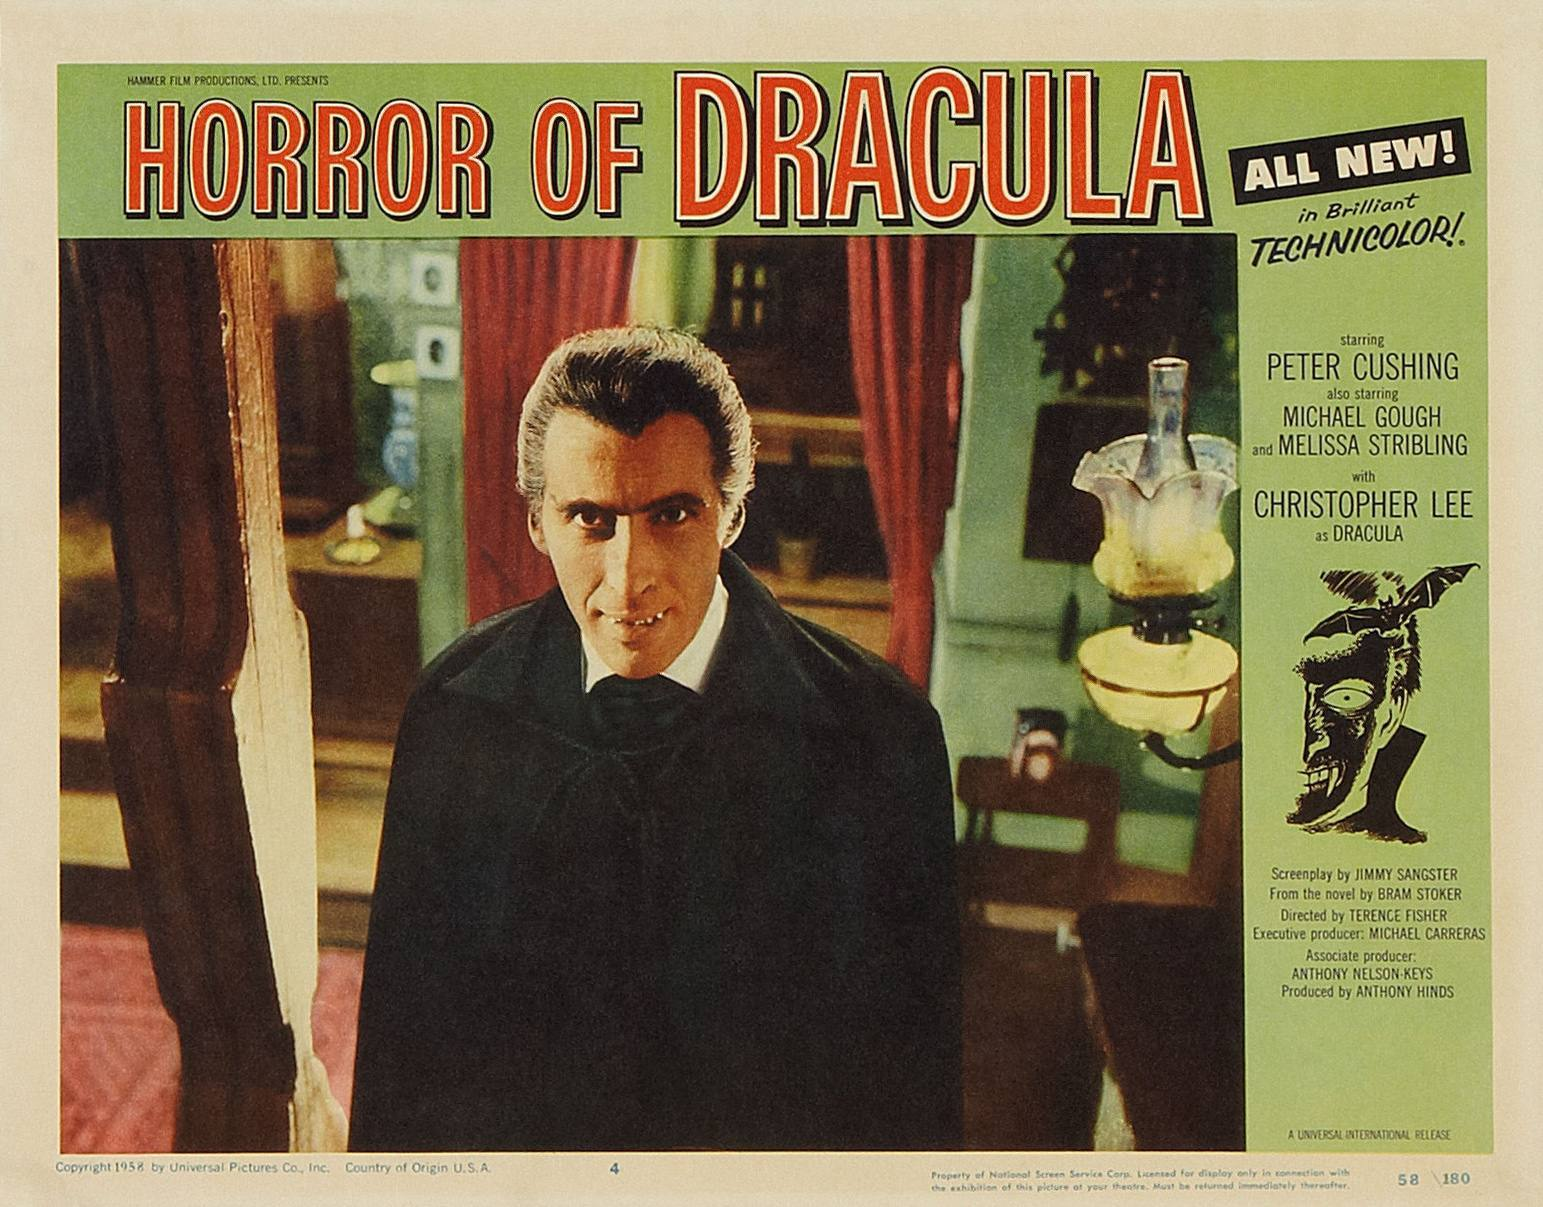 Horror of Dracula was the American title of Dracula so as not to confuse with the original Bela Lugosi Universal version.